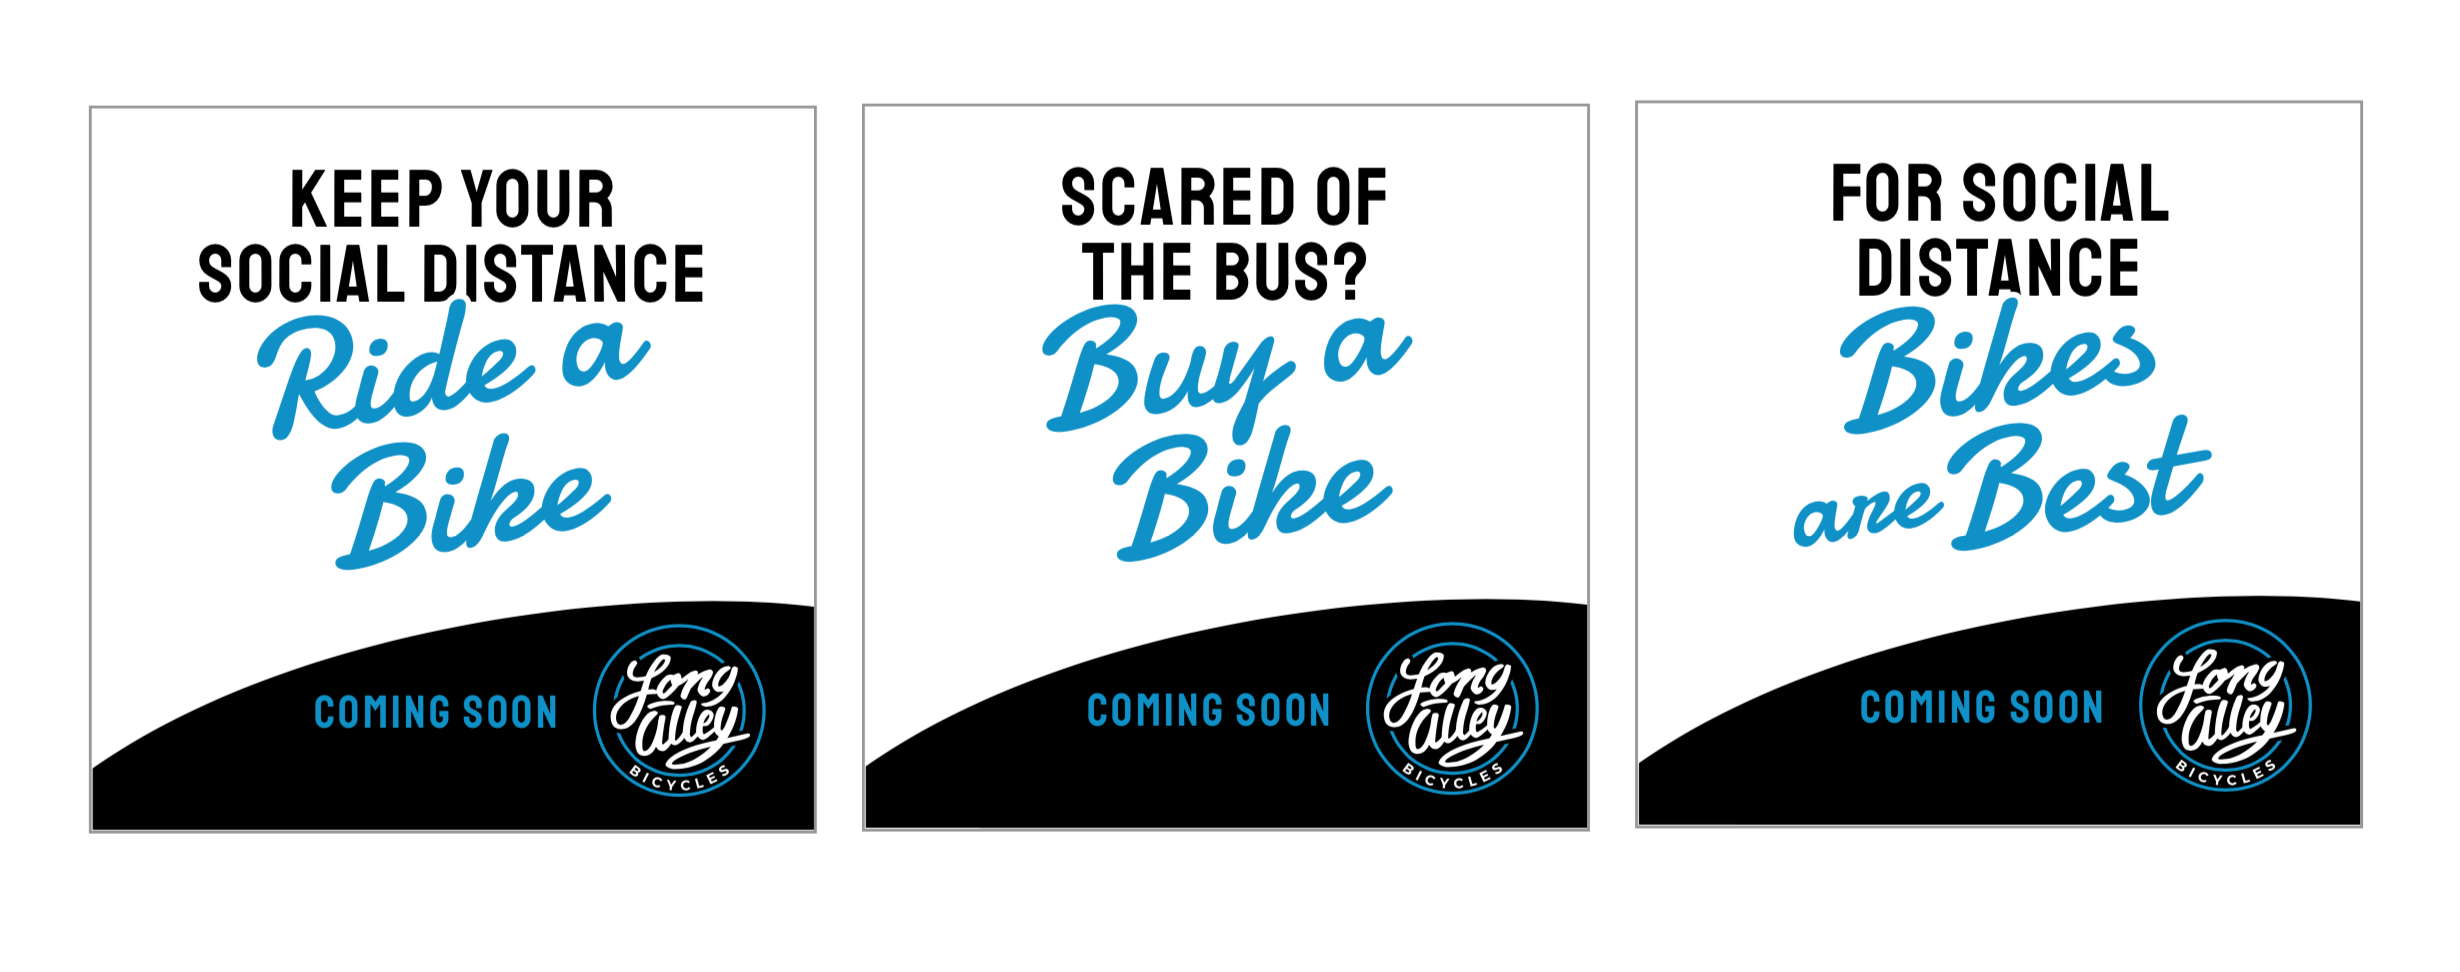 ad campaign - scared of the bus? Buy a bike.